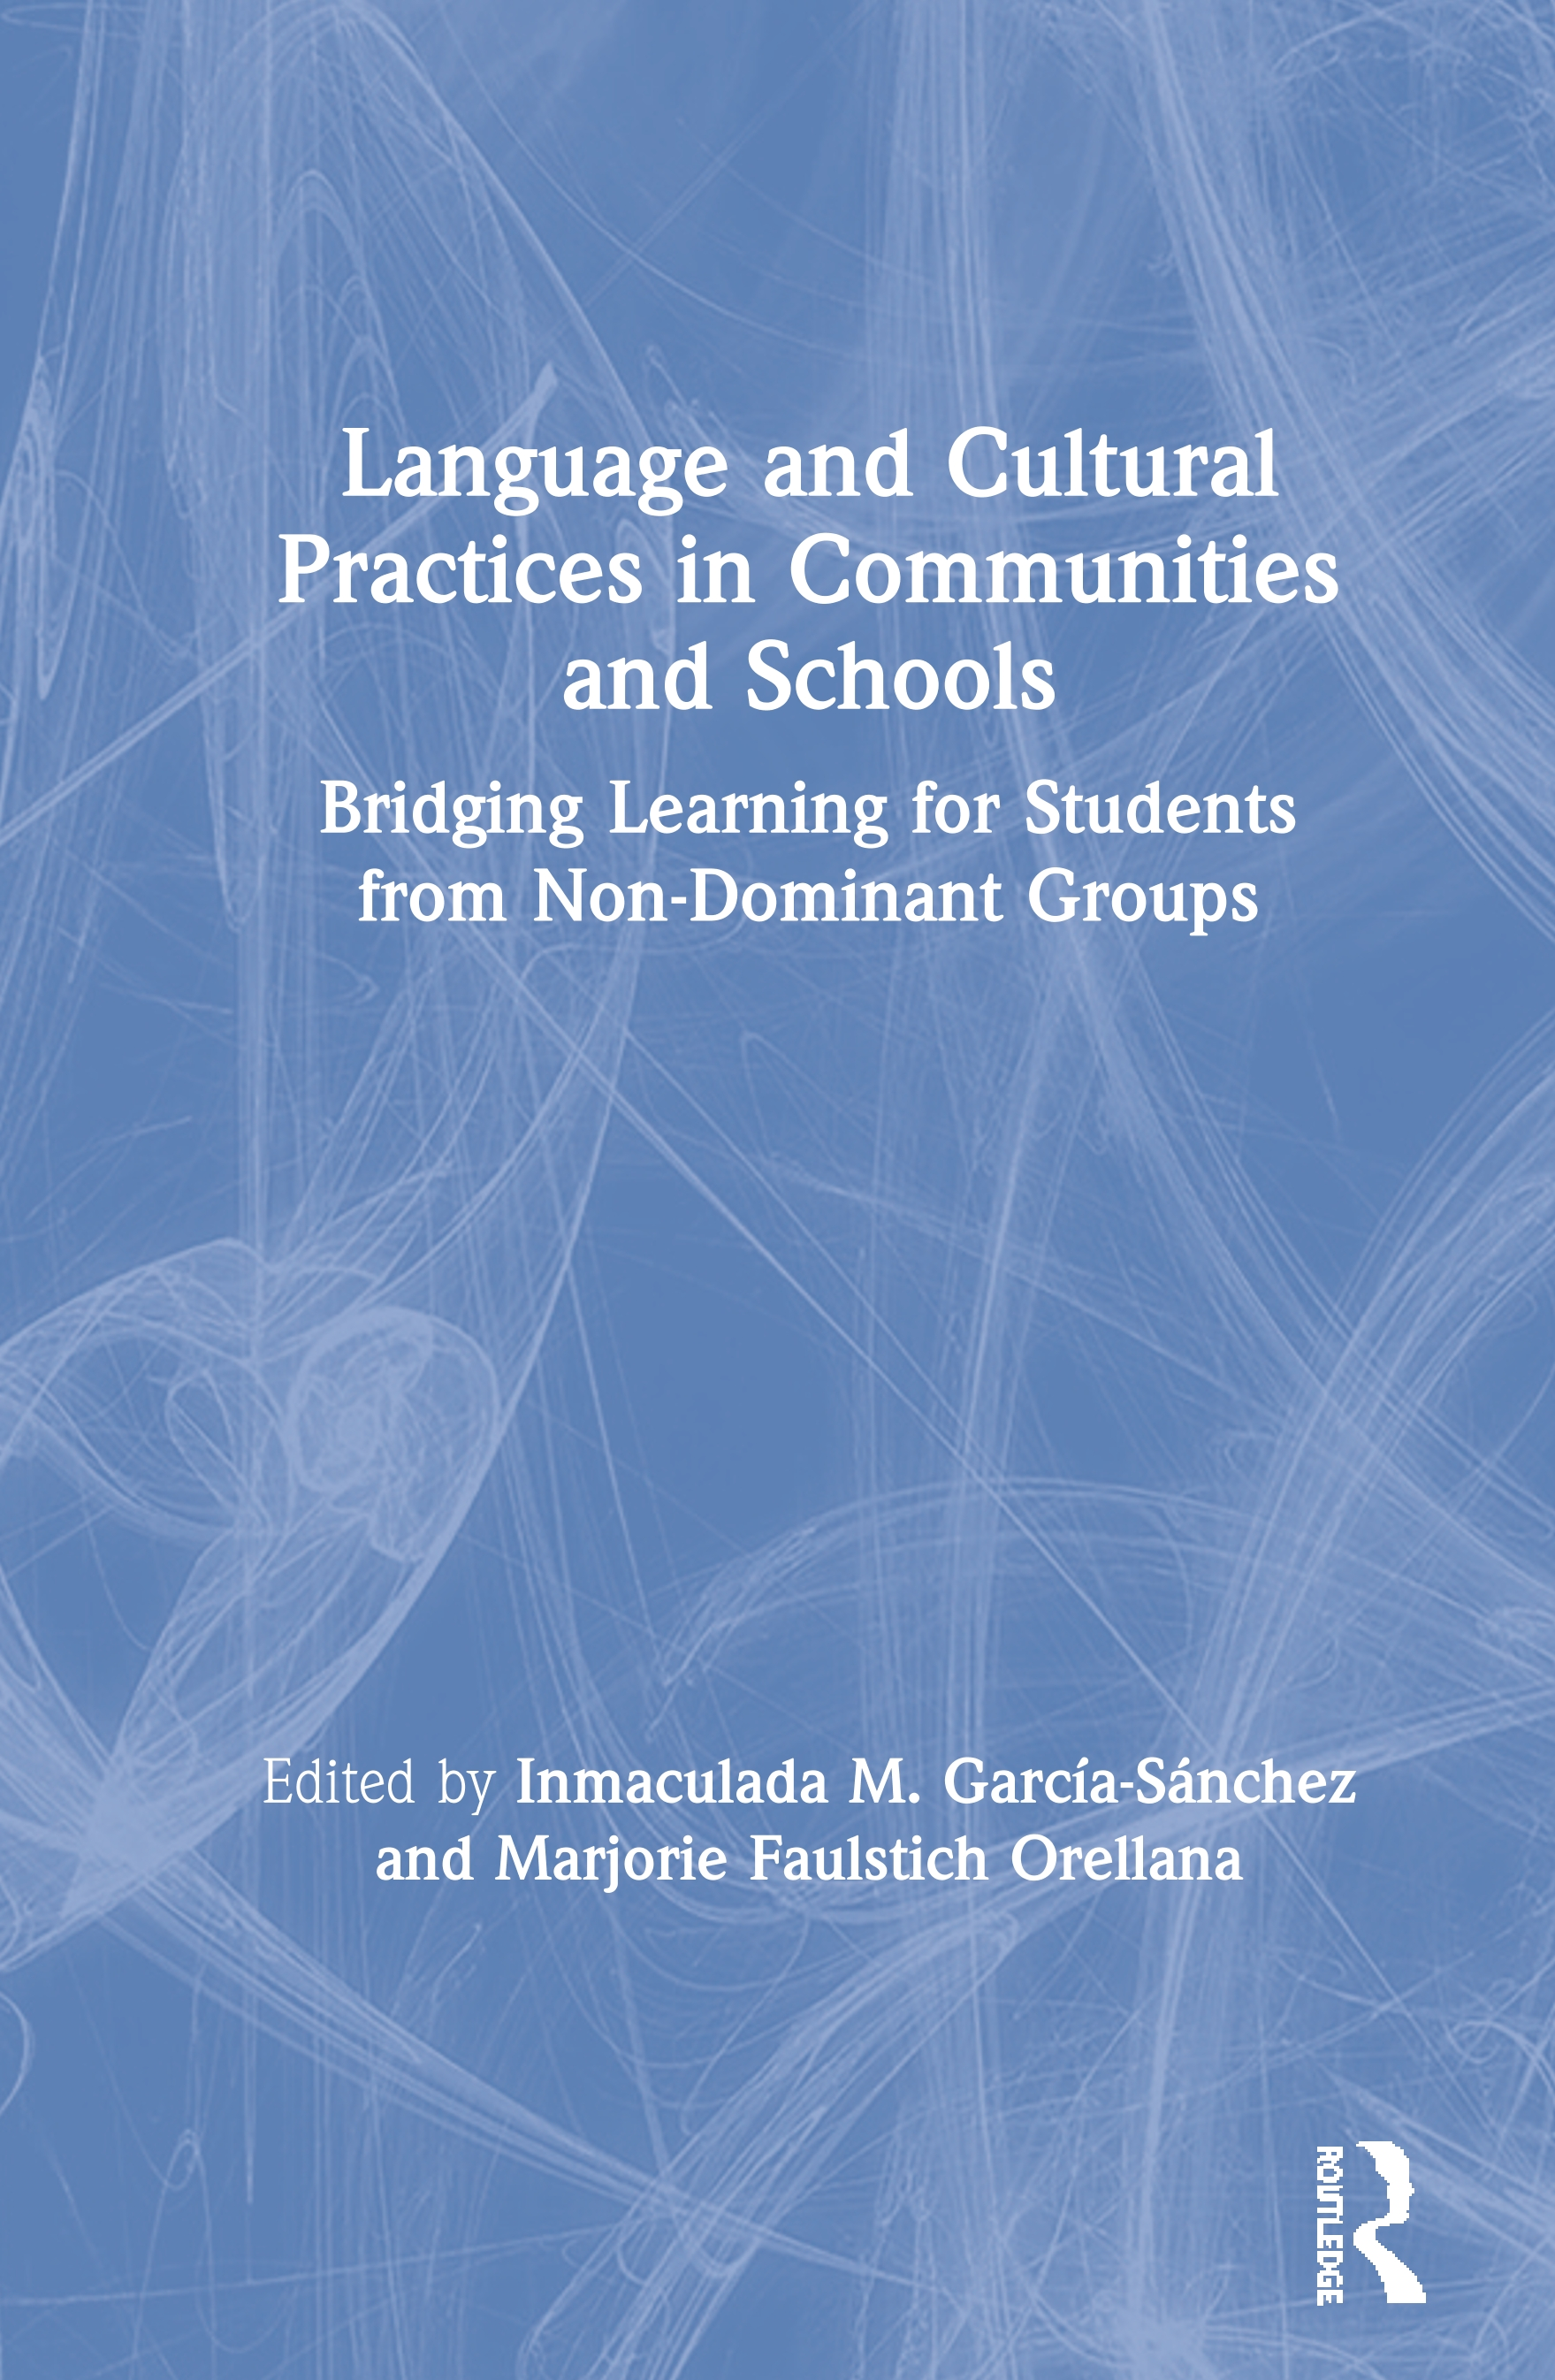 Language and Cultural Practices in Communities and Schools: Bridging Learning for Students from Non-Dominant Groups book cover